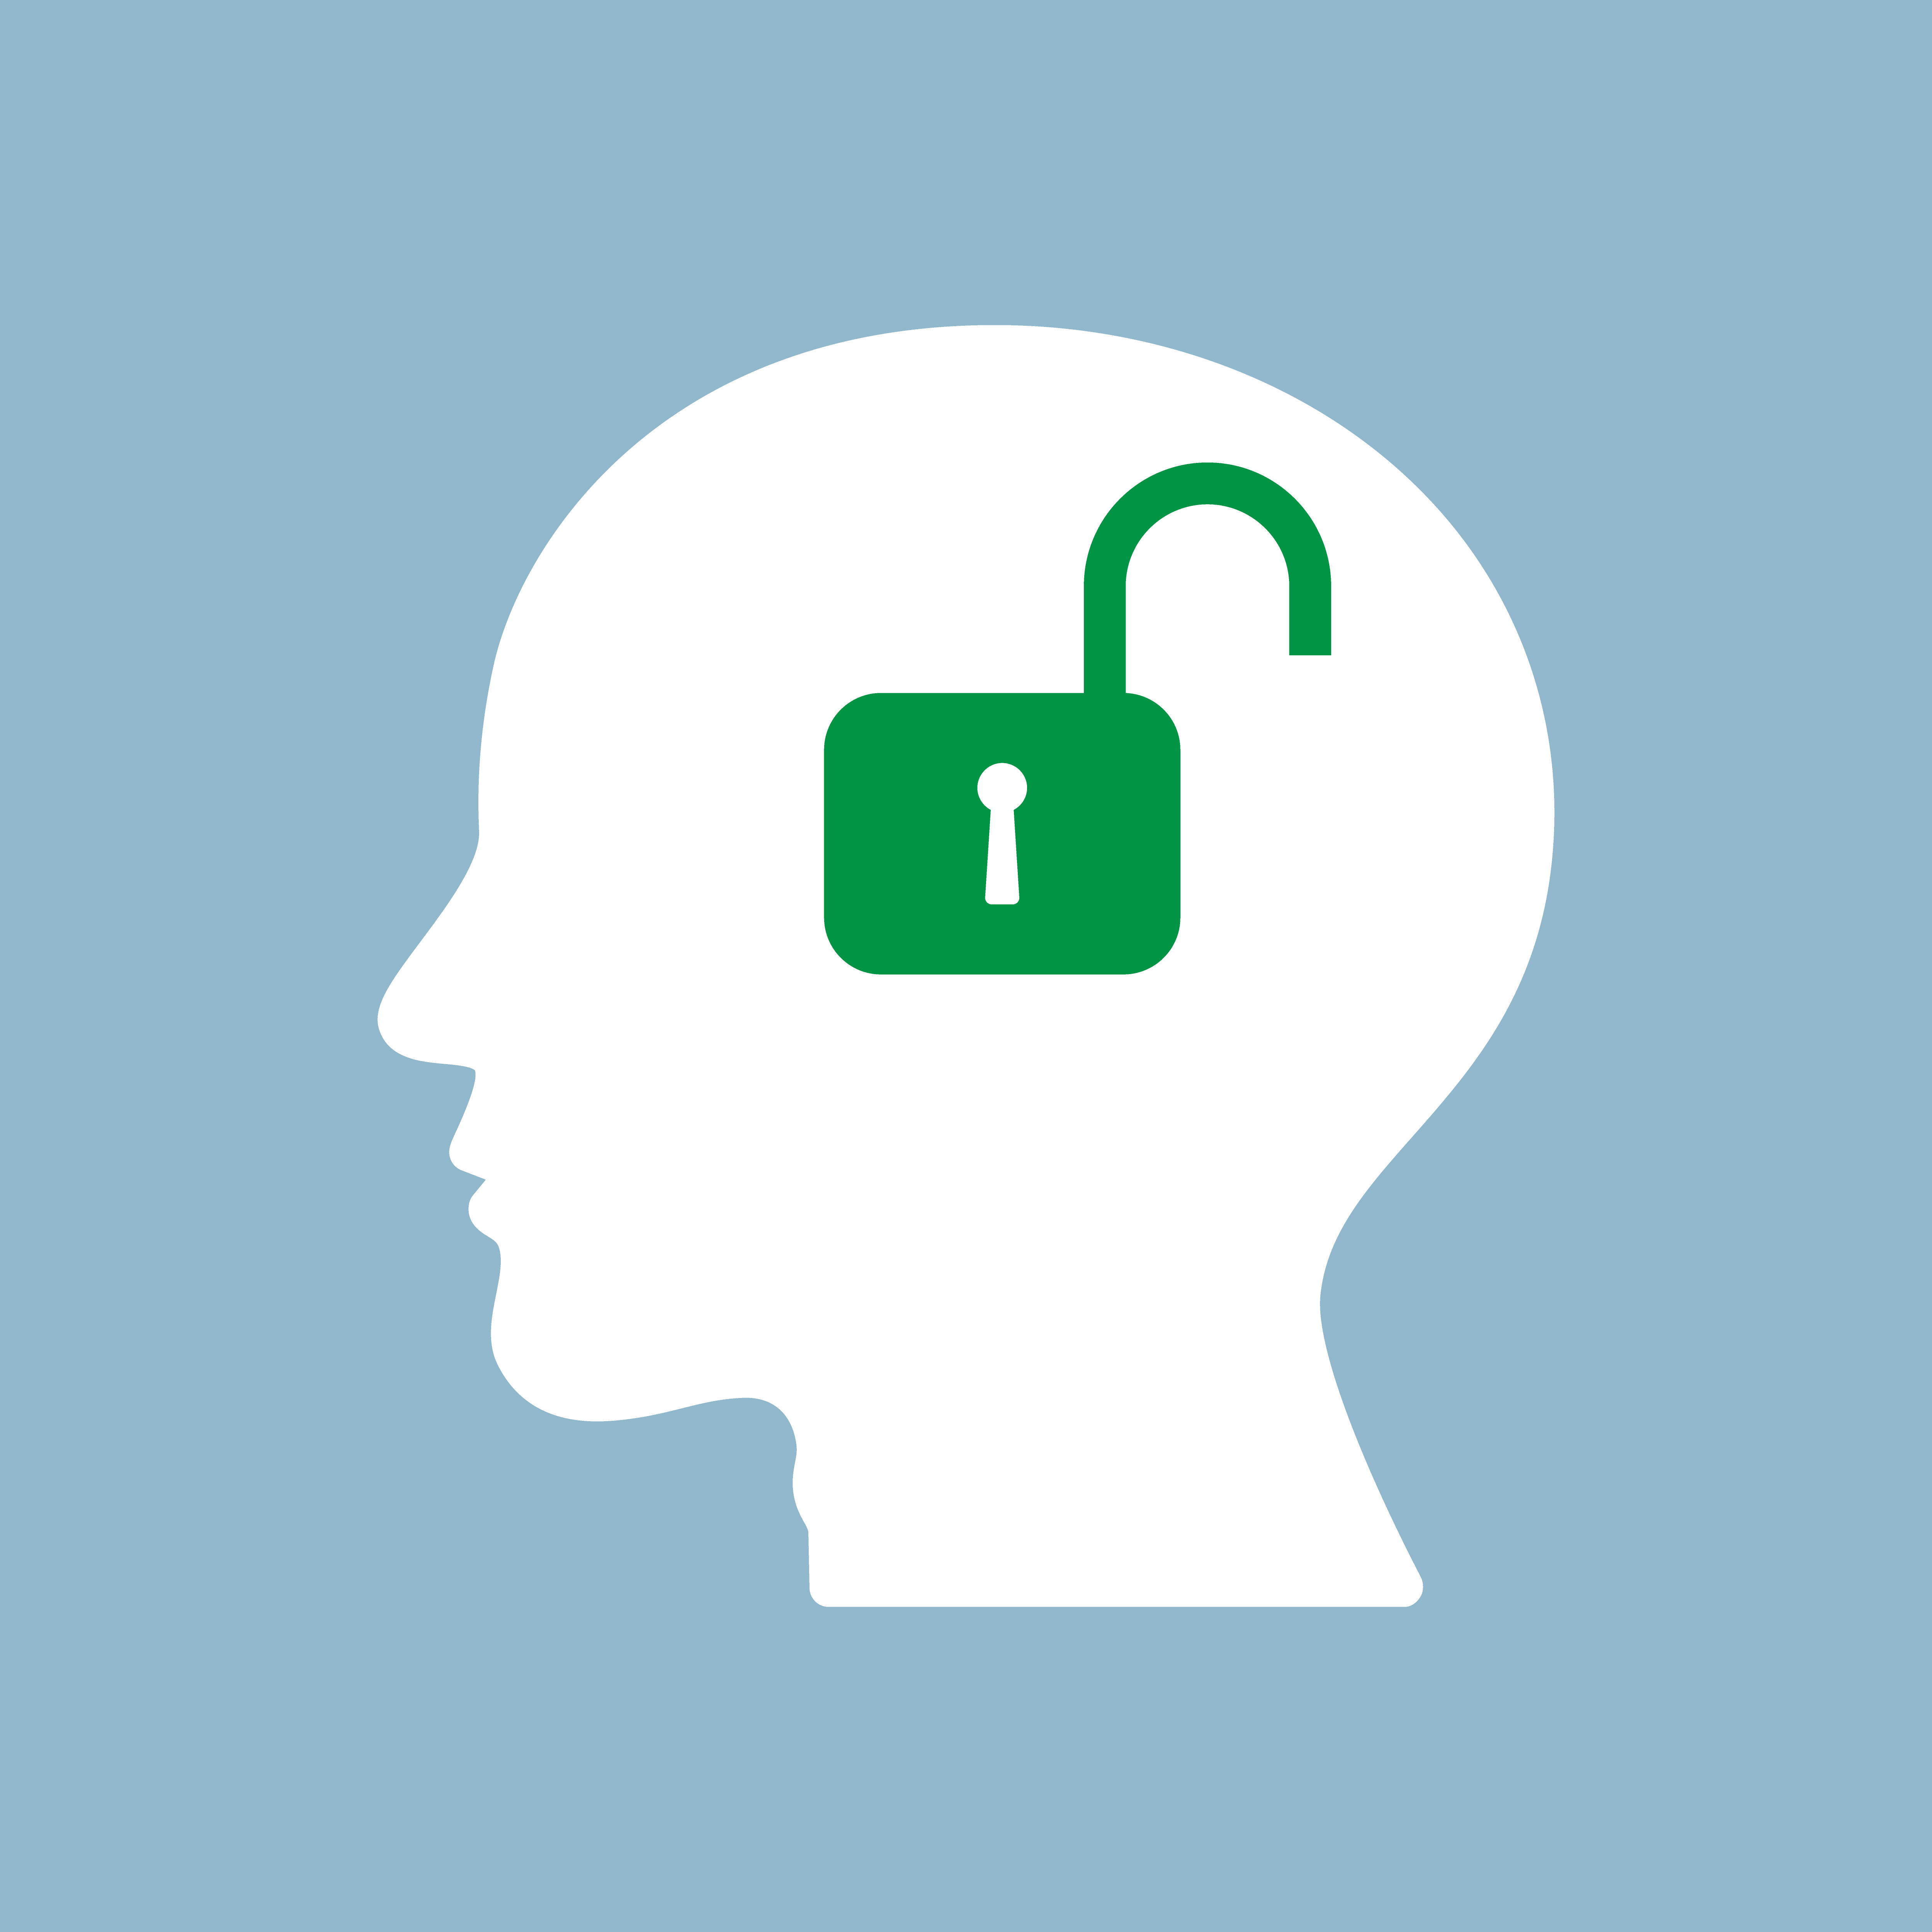 An unlocked lock in place of a brain, representing an ADHD misdiagnosis that was corrected